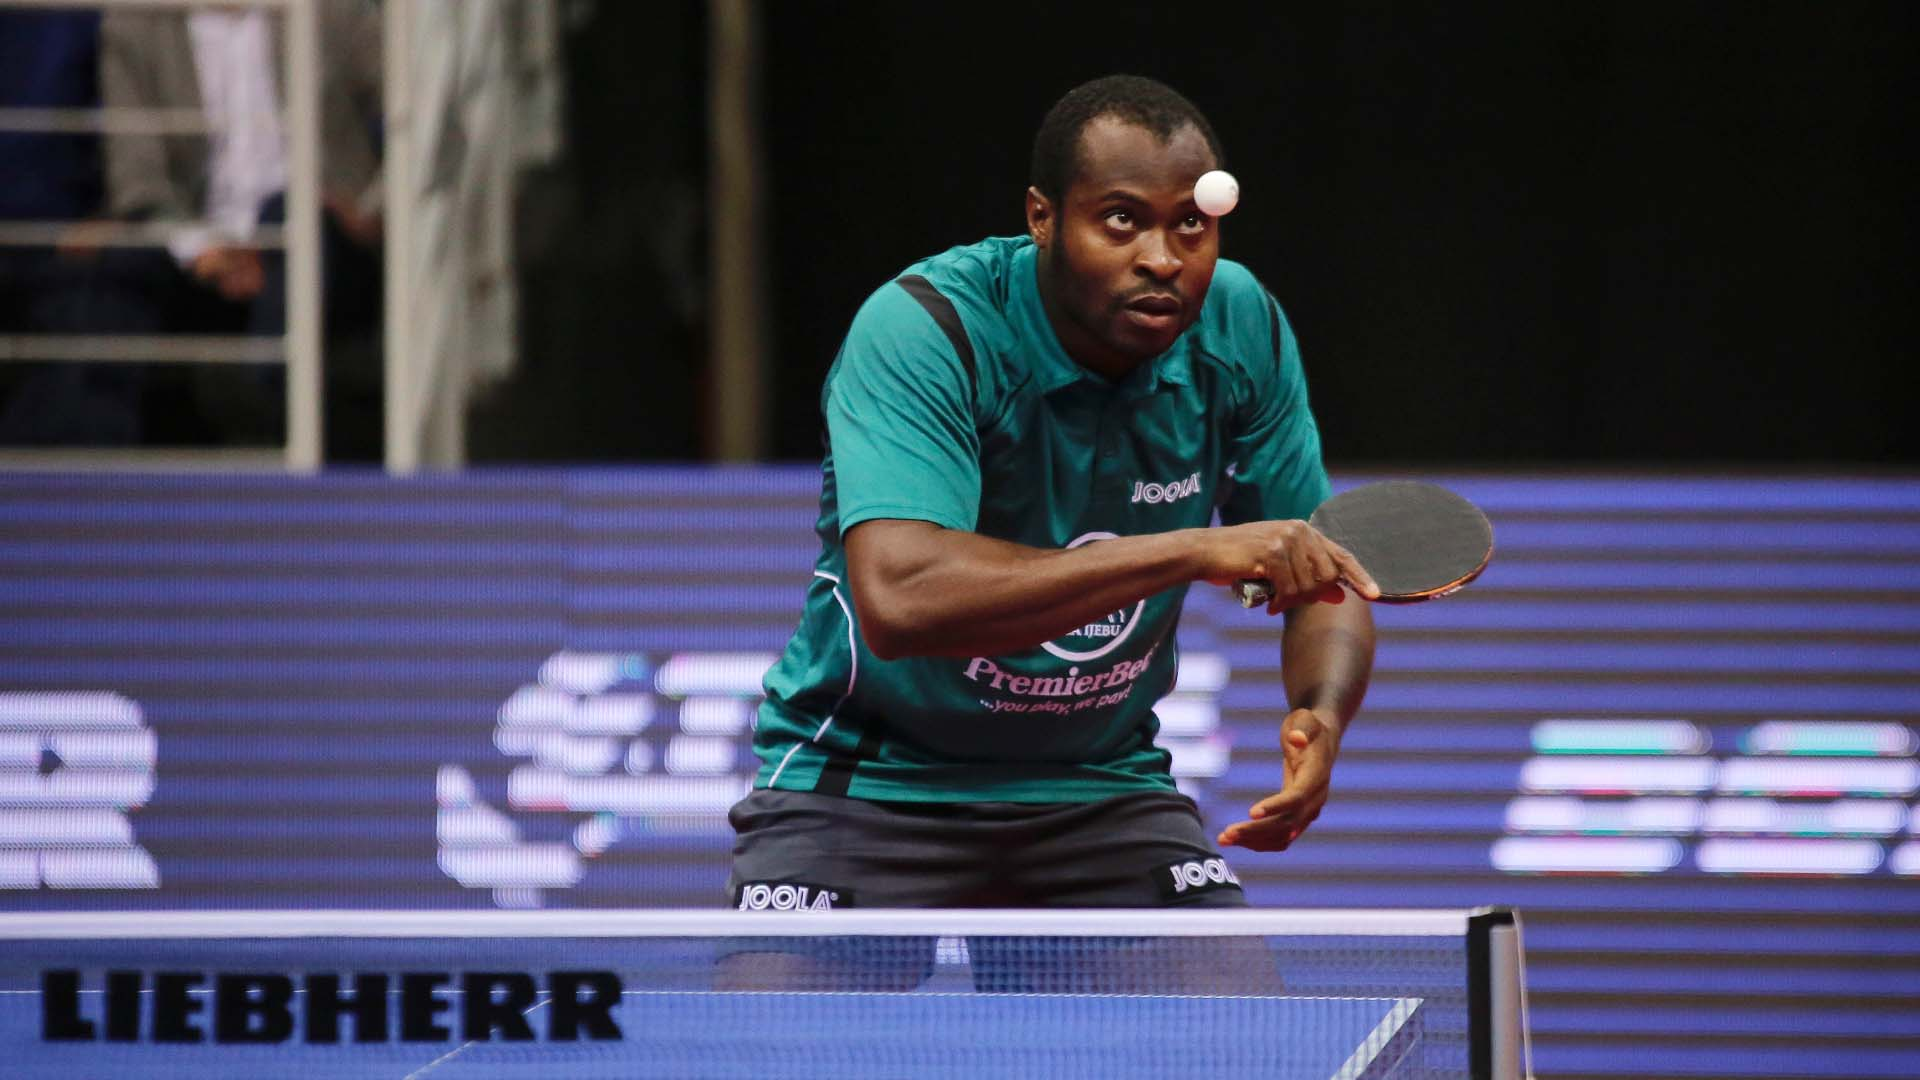 ITTF Men's World Cup: Quadri Qualifies For Main Draw